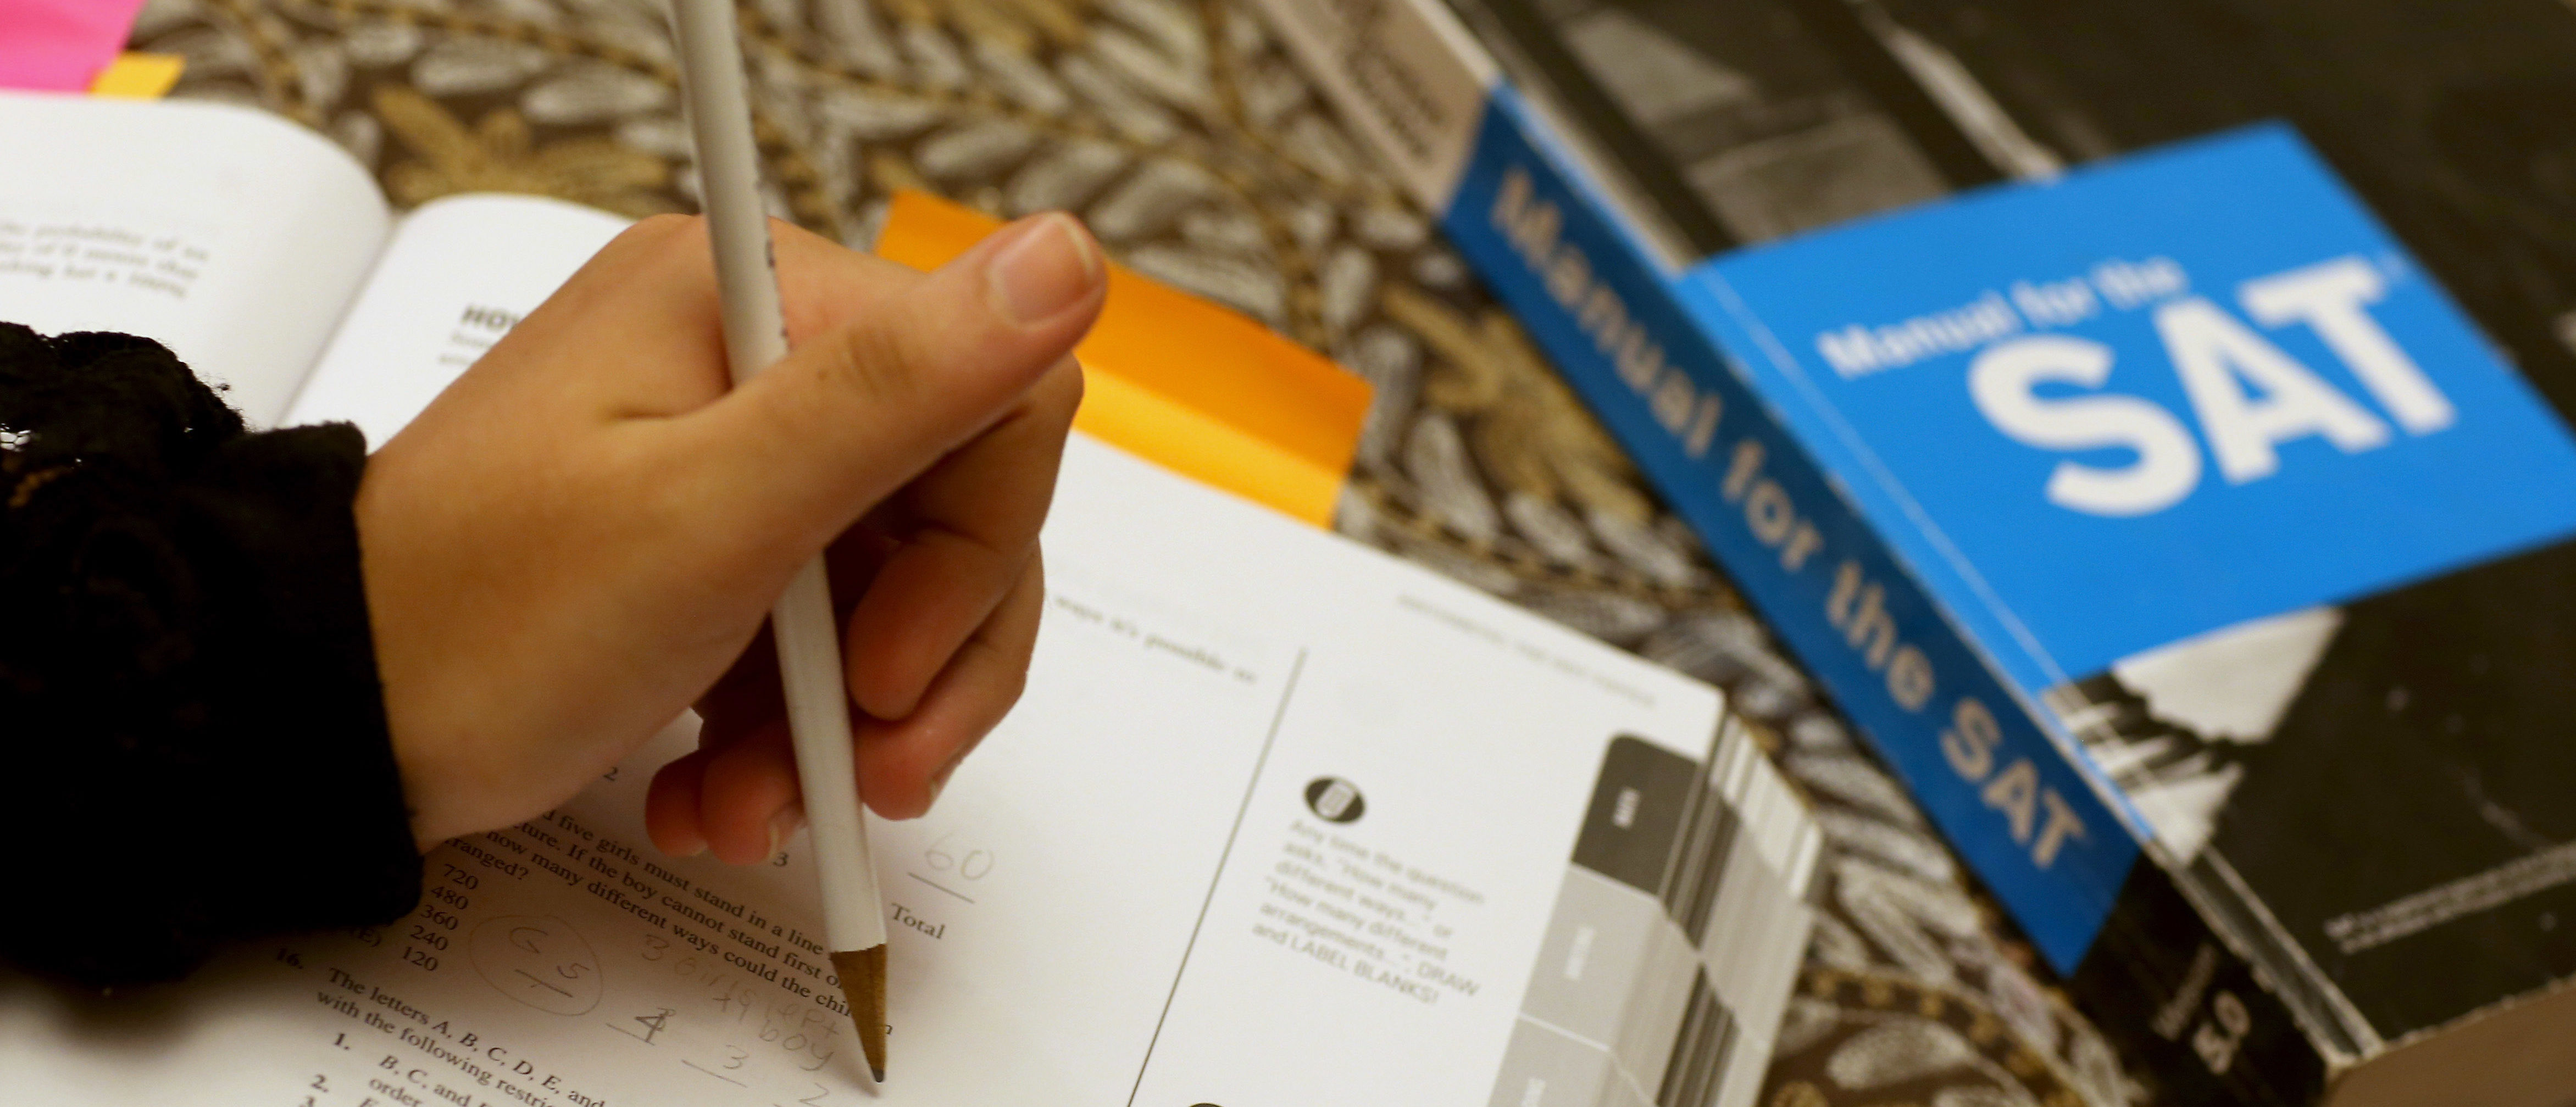 Critics Say Real Aim Of College Board Adversity Score Is Race-Based Discrimination